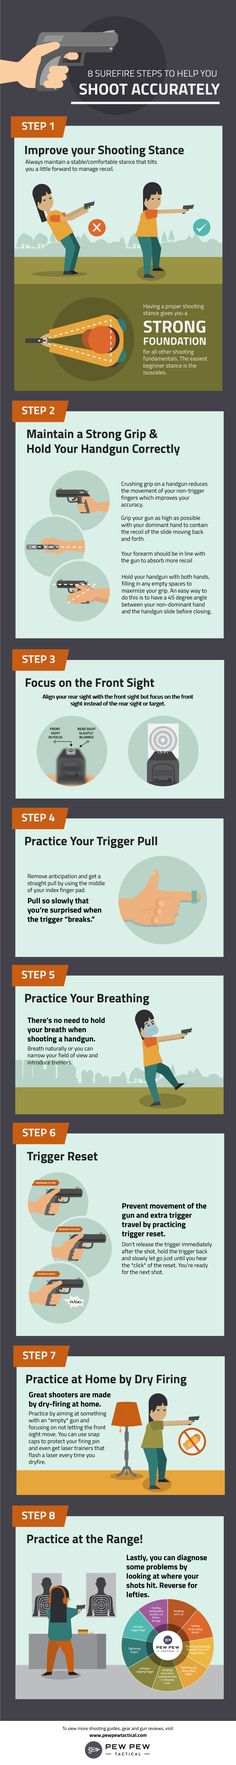 8 Surefire Steps to Help You Shoot Accurately #Infographic #Gun #Shoot